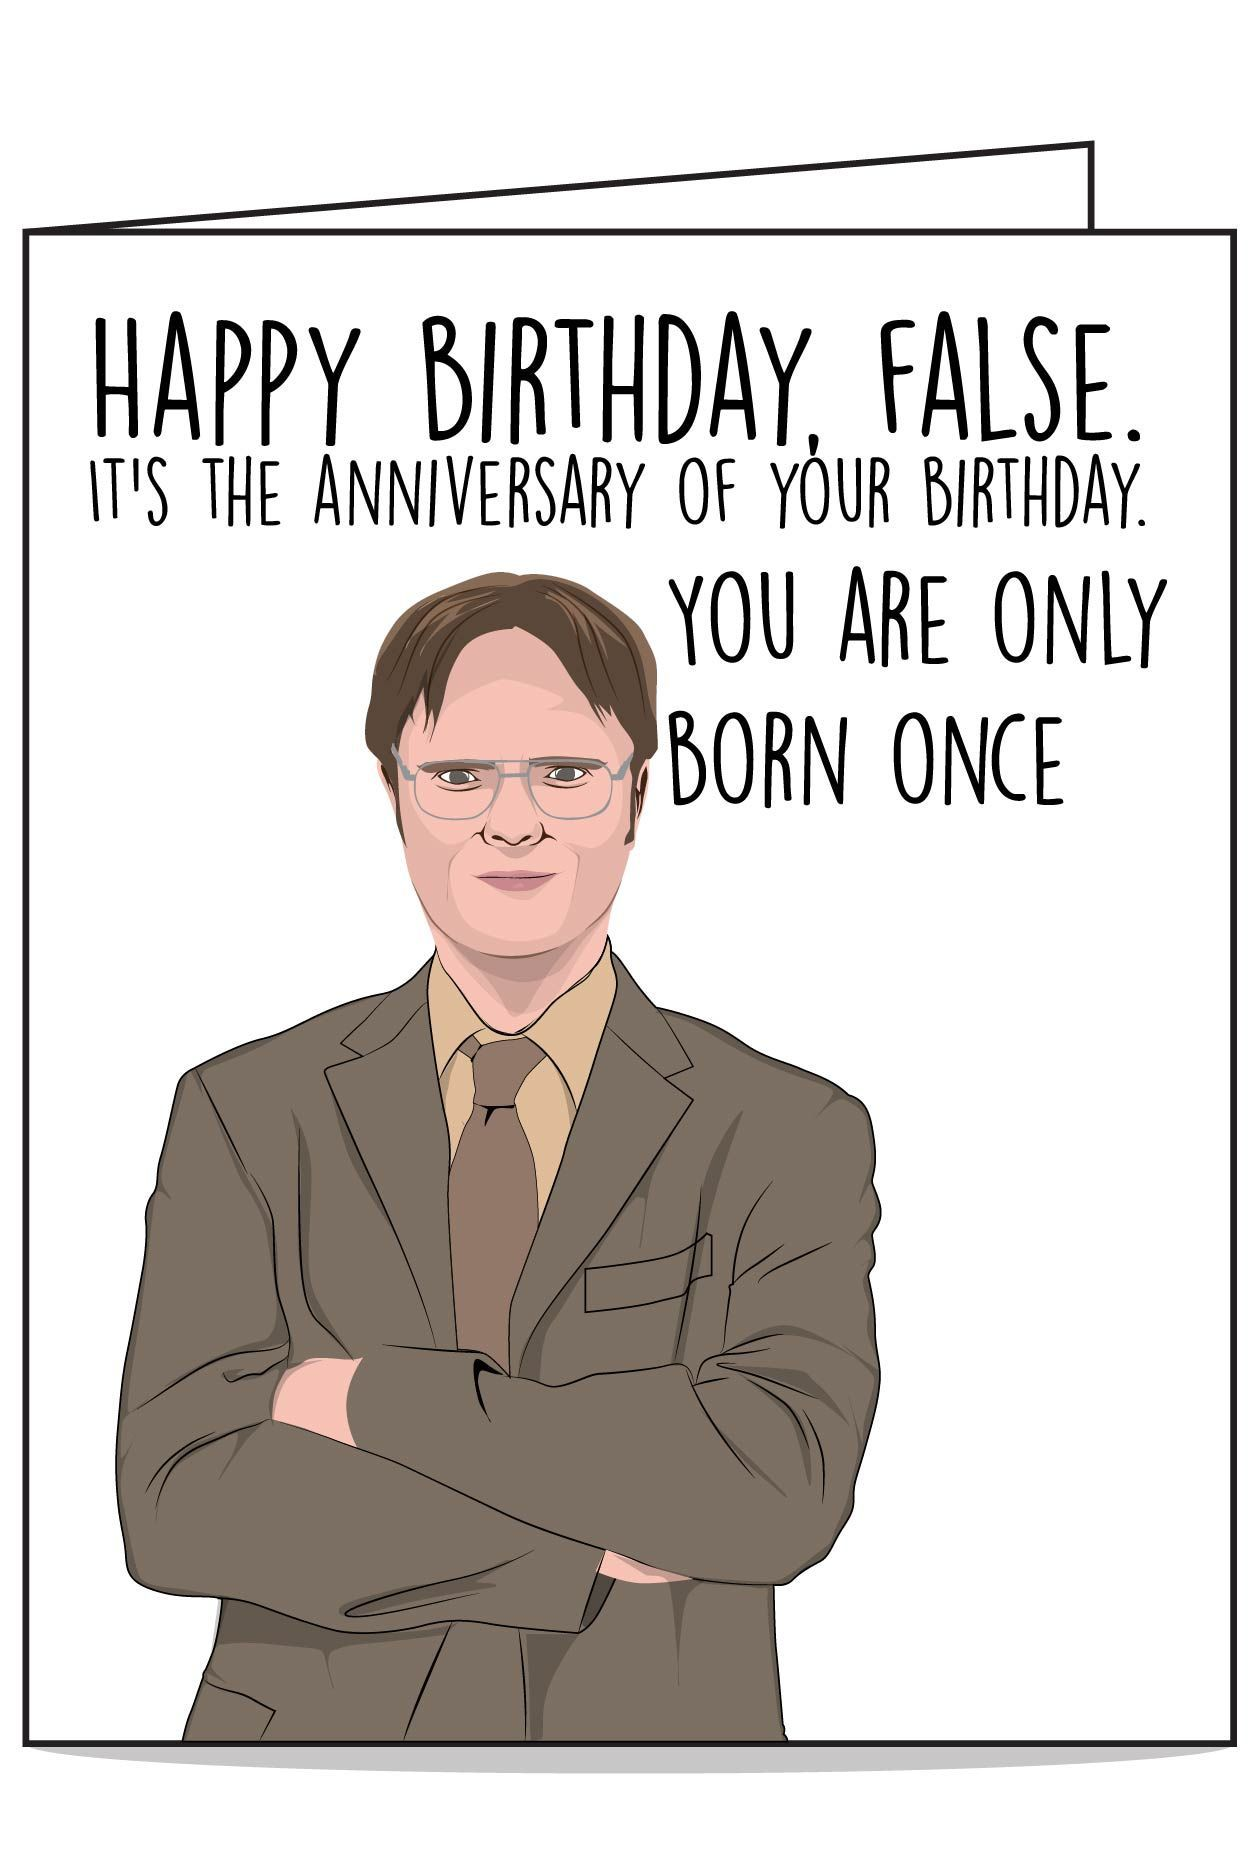 Dwight The Office Birthday Card (With images)   Office ...